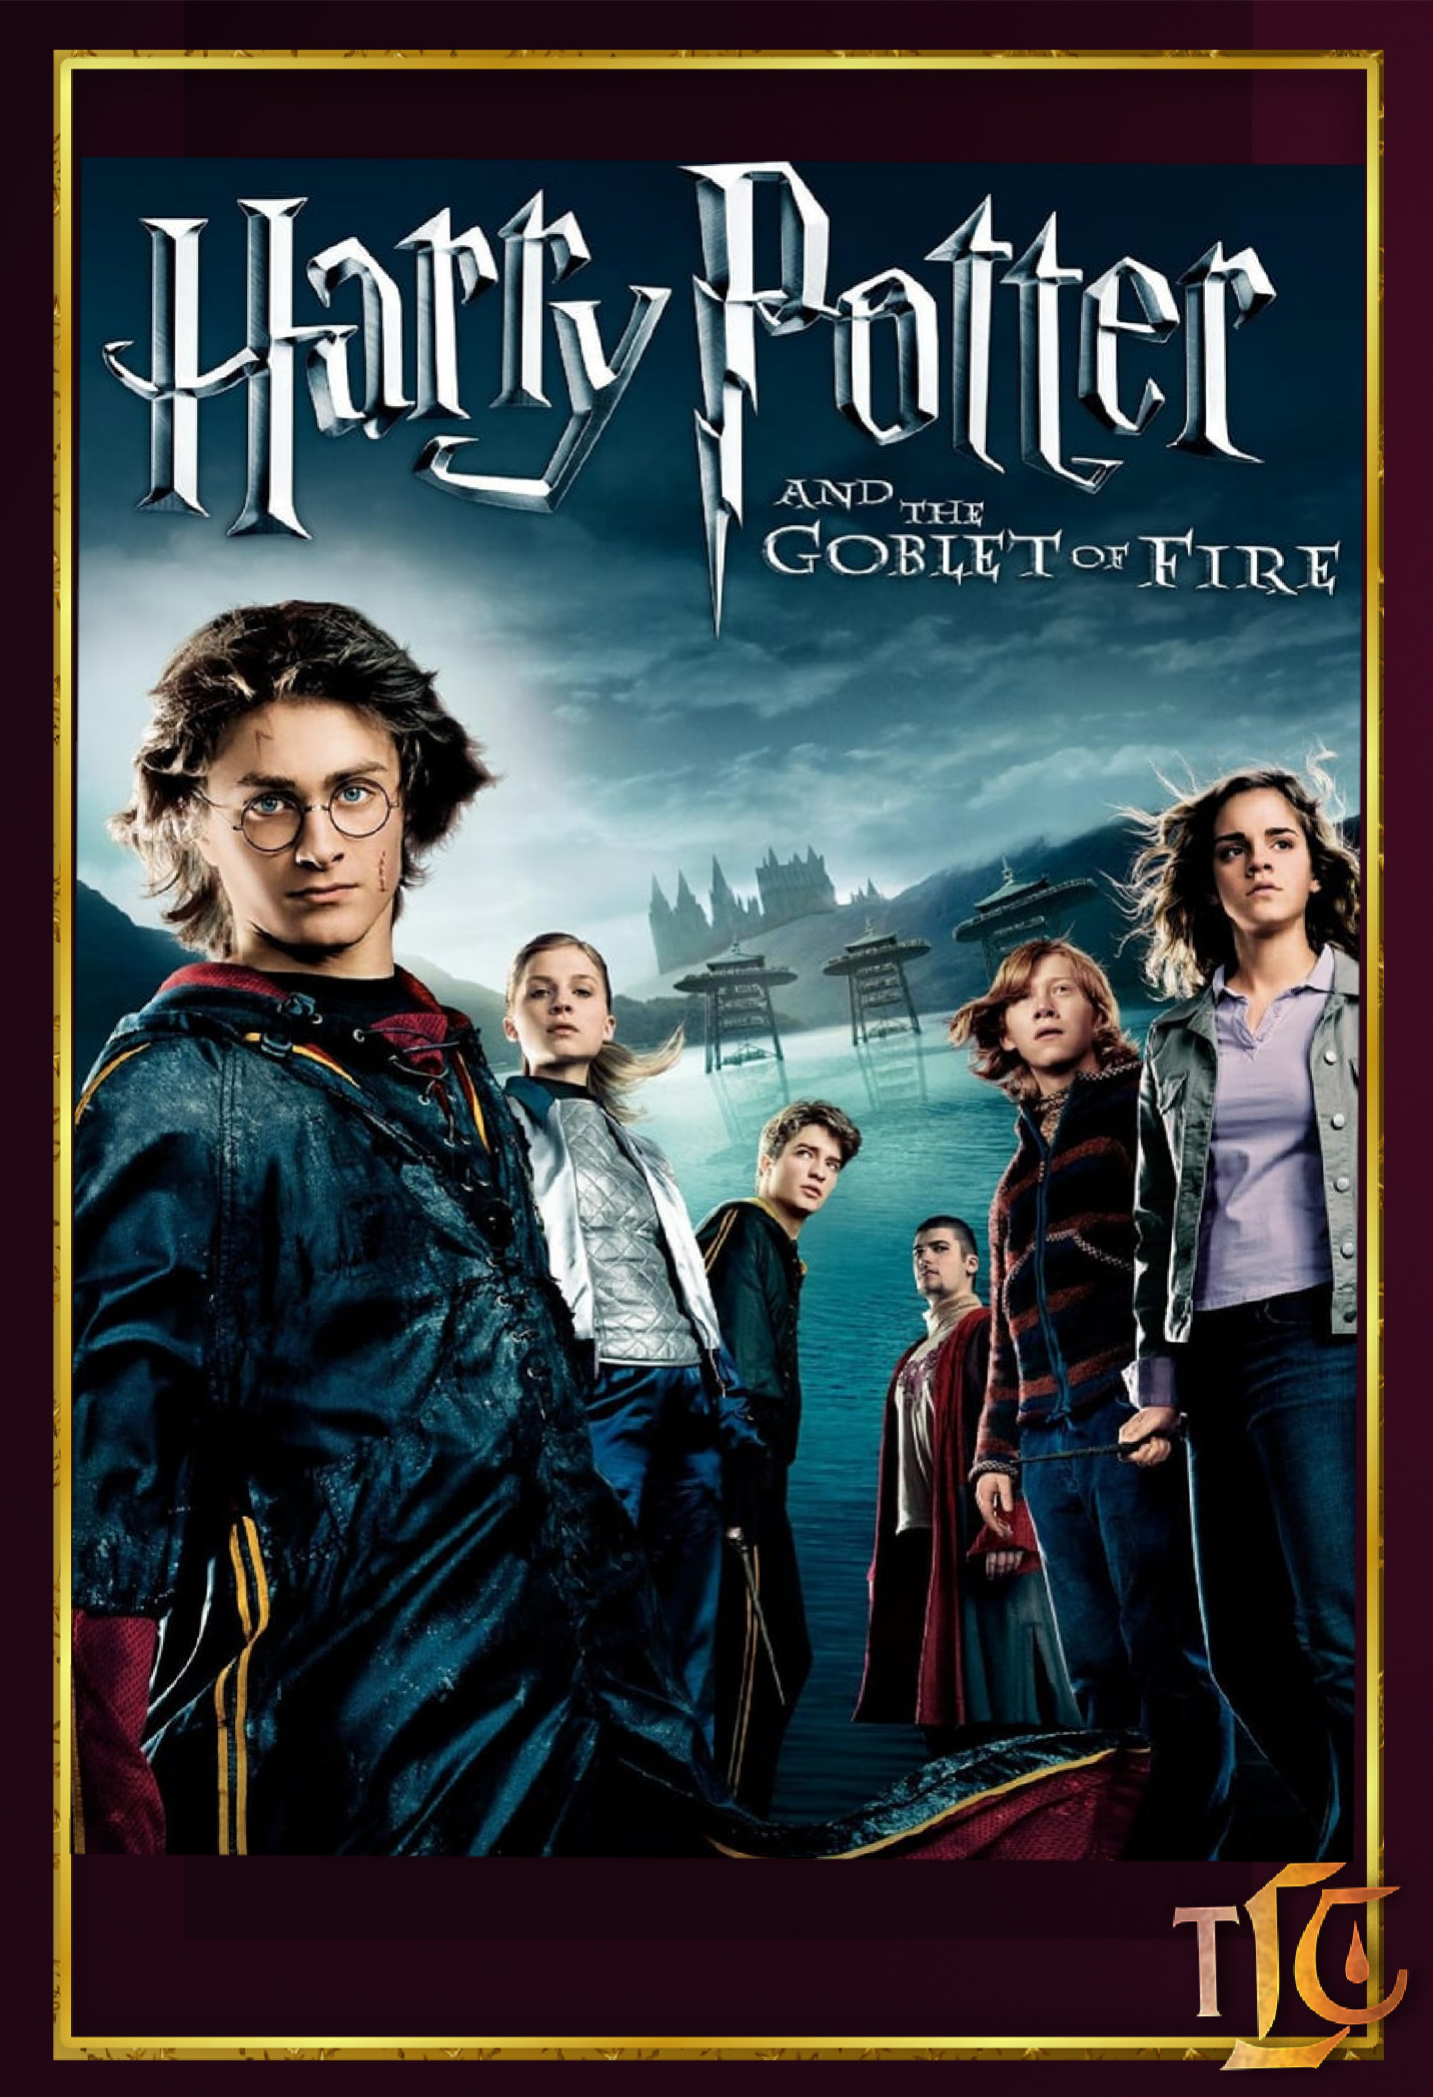 Harry Potter And The Goblet Of Fire Time For A Rewatch Goblet Of Fire Fire Movie Movie History